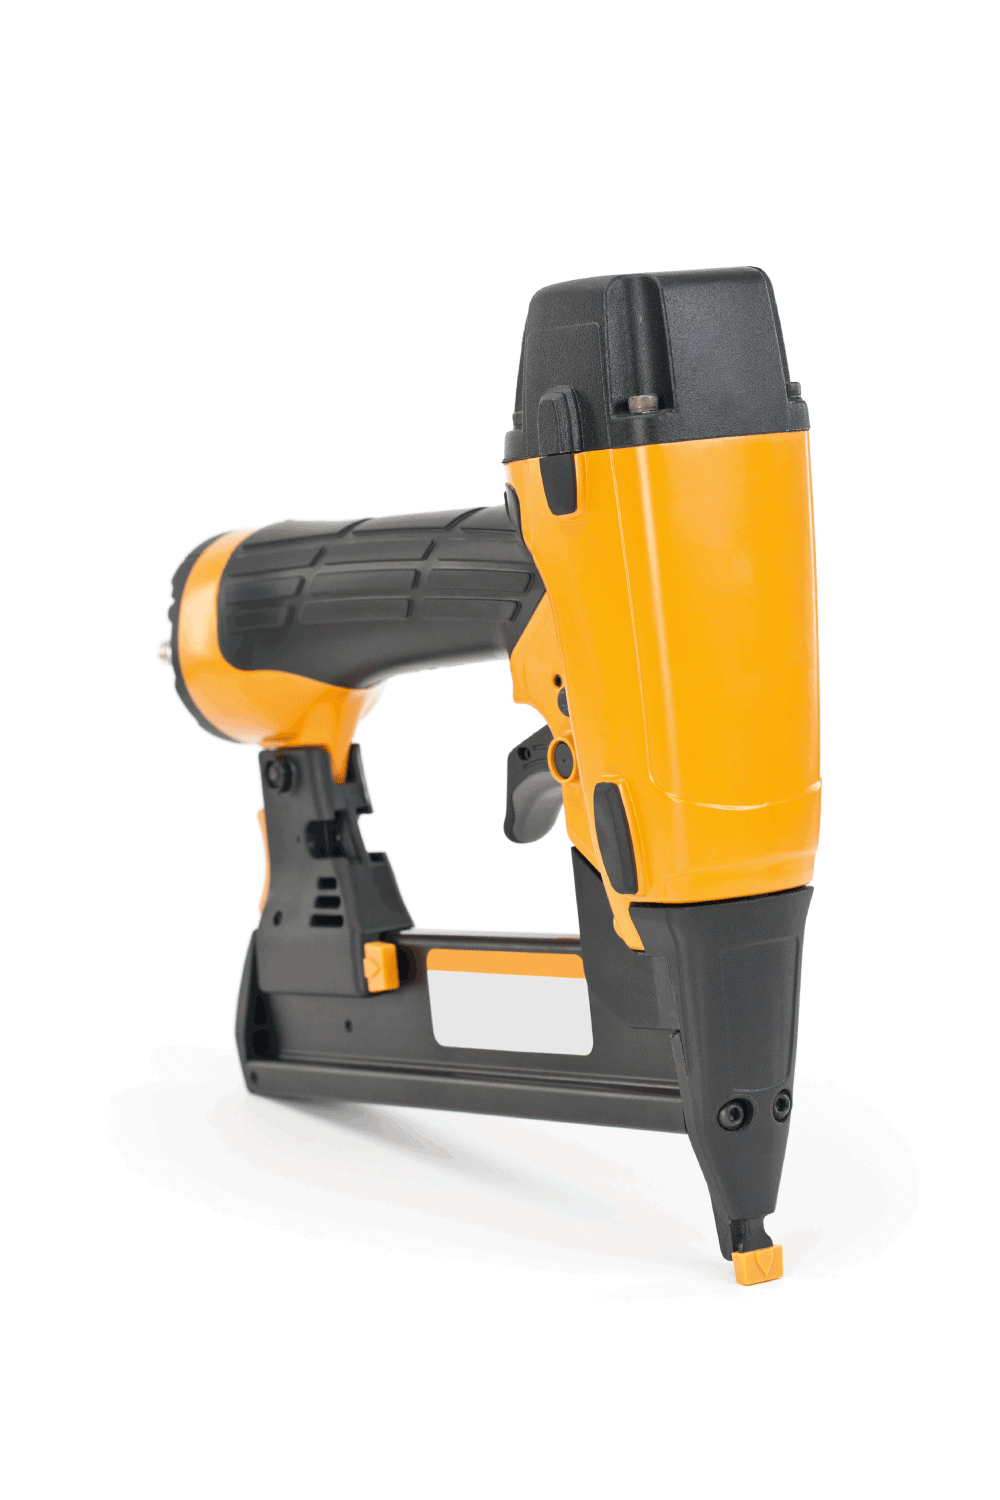 A pneumatic nail gun close-up isolated on a white background